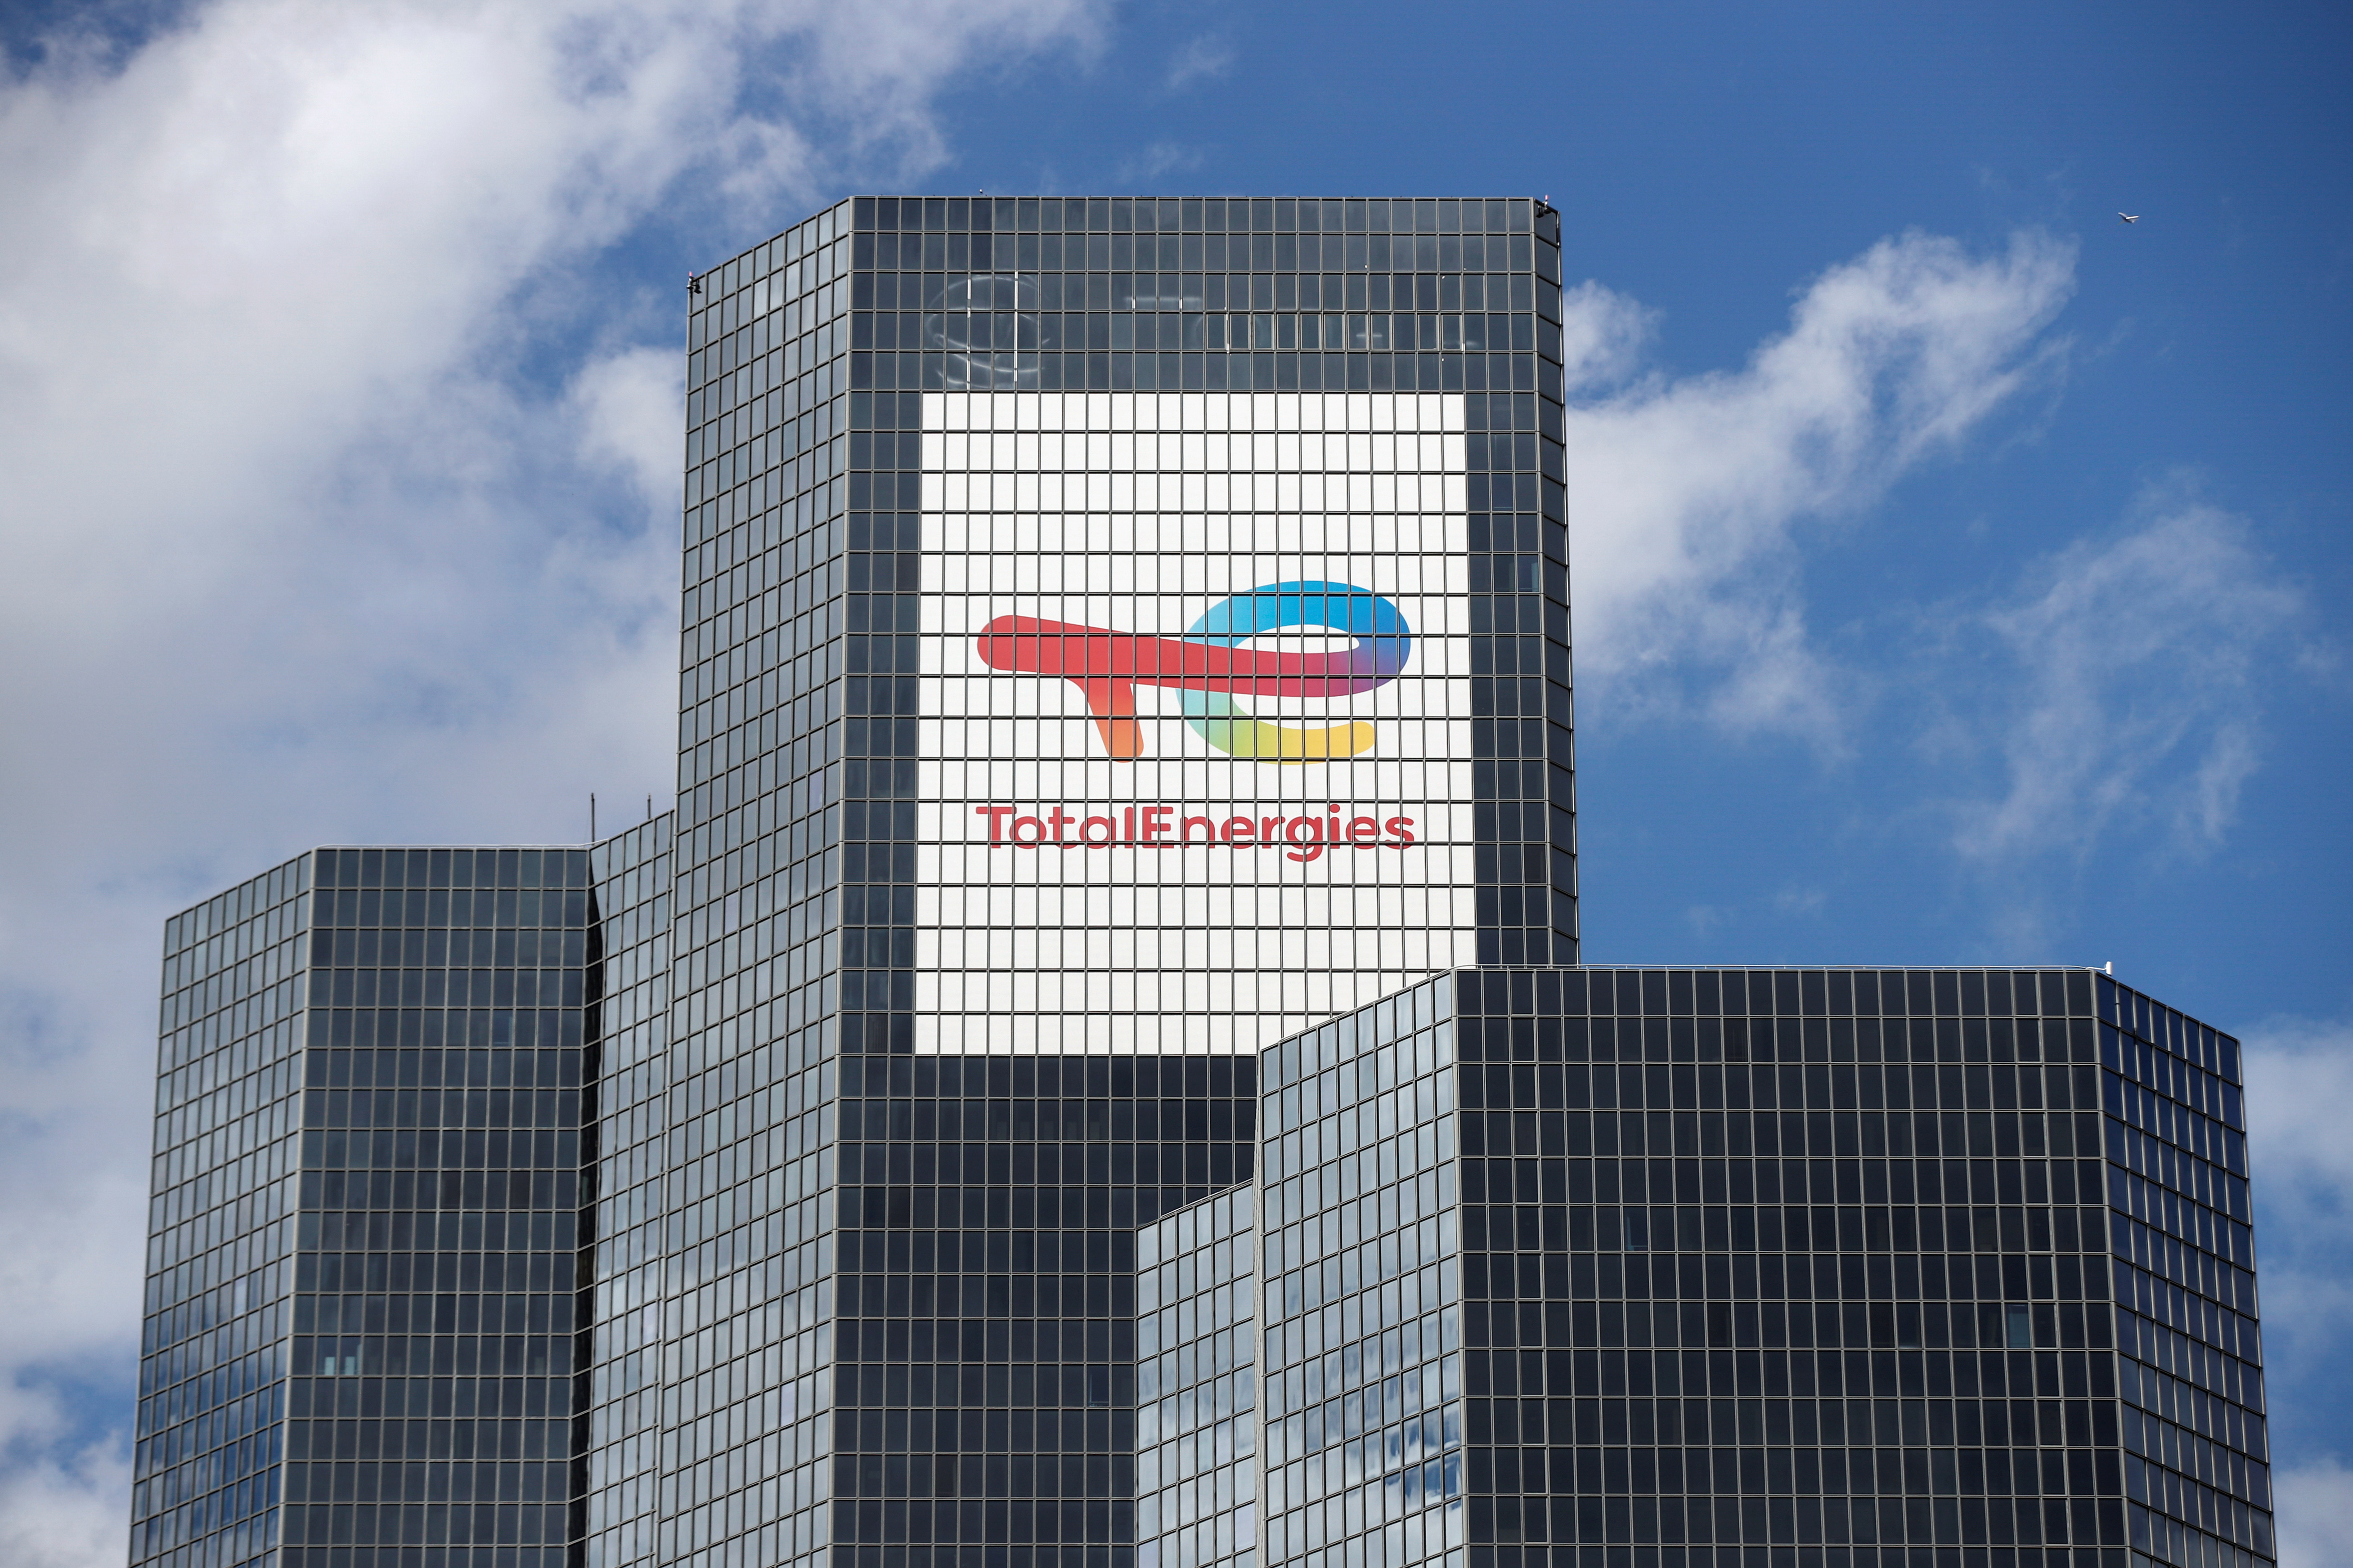 A general view of a logo on the TotalEnergies headquarters in the La Defense business district in Paris, France, July 28, 2021. REUTERS/Benoit Tessier